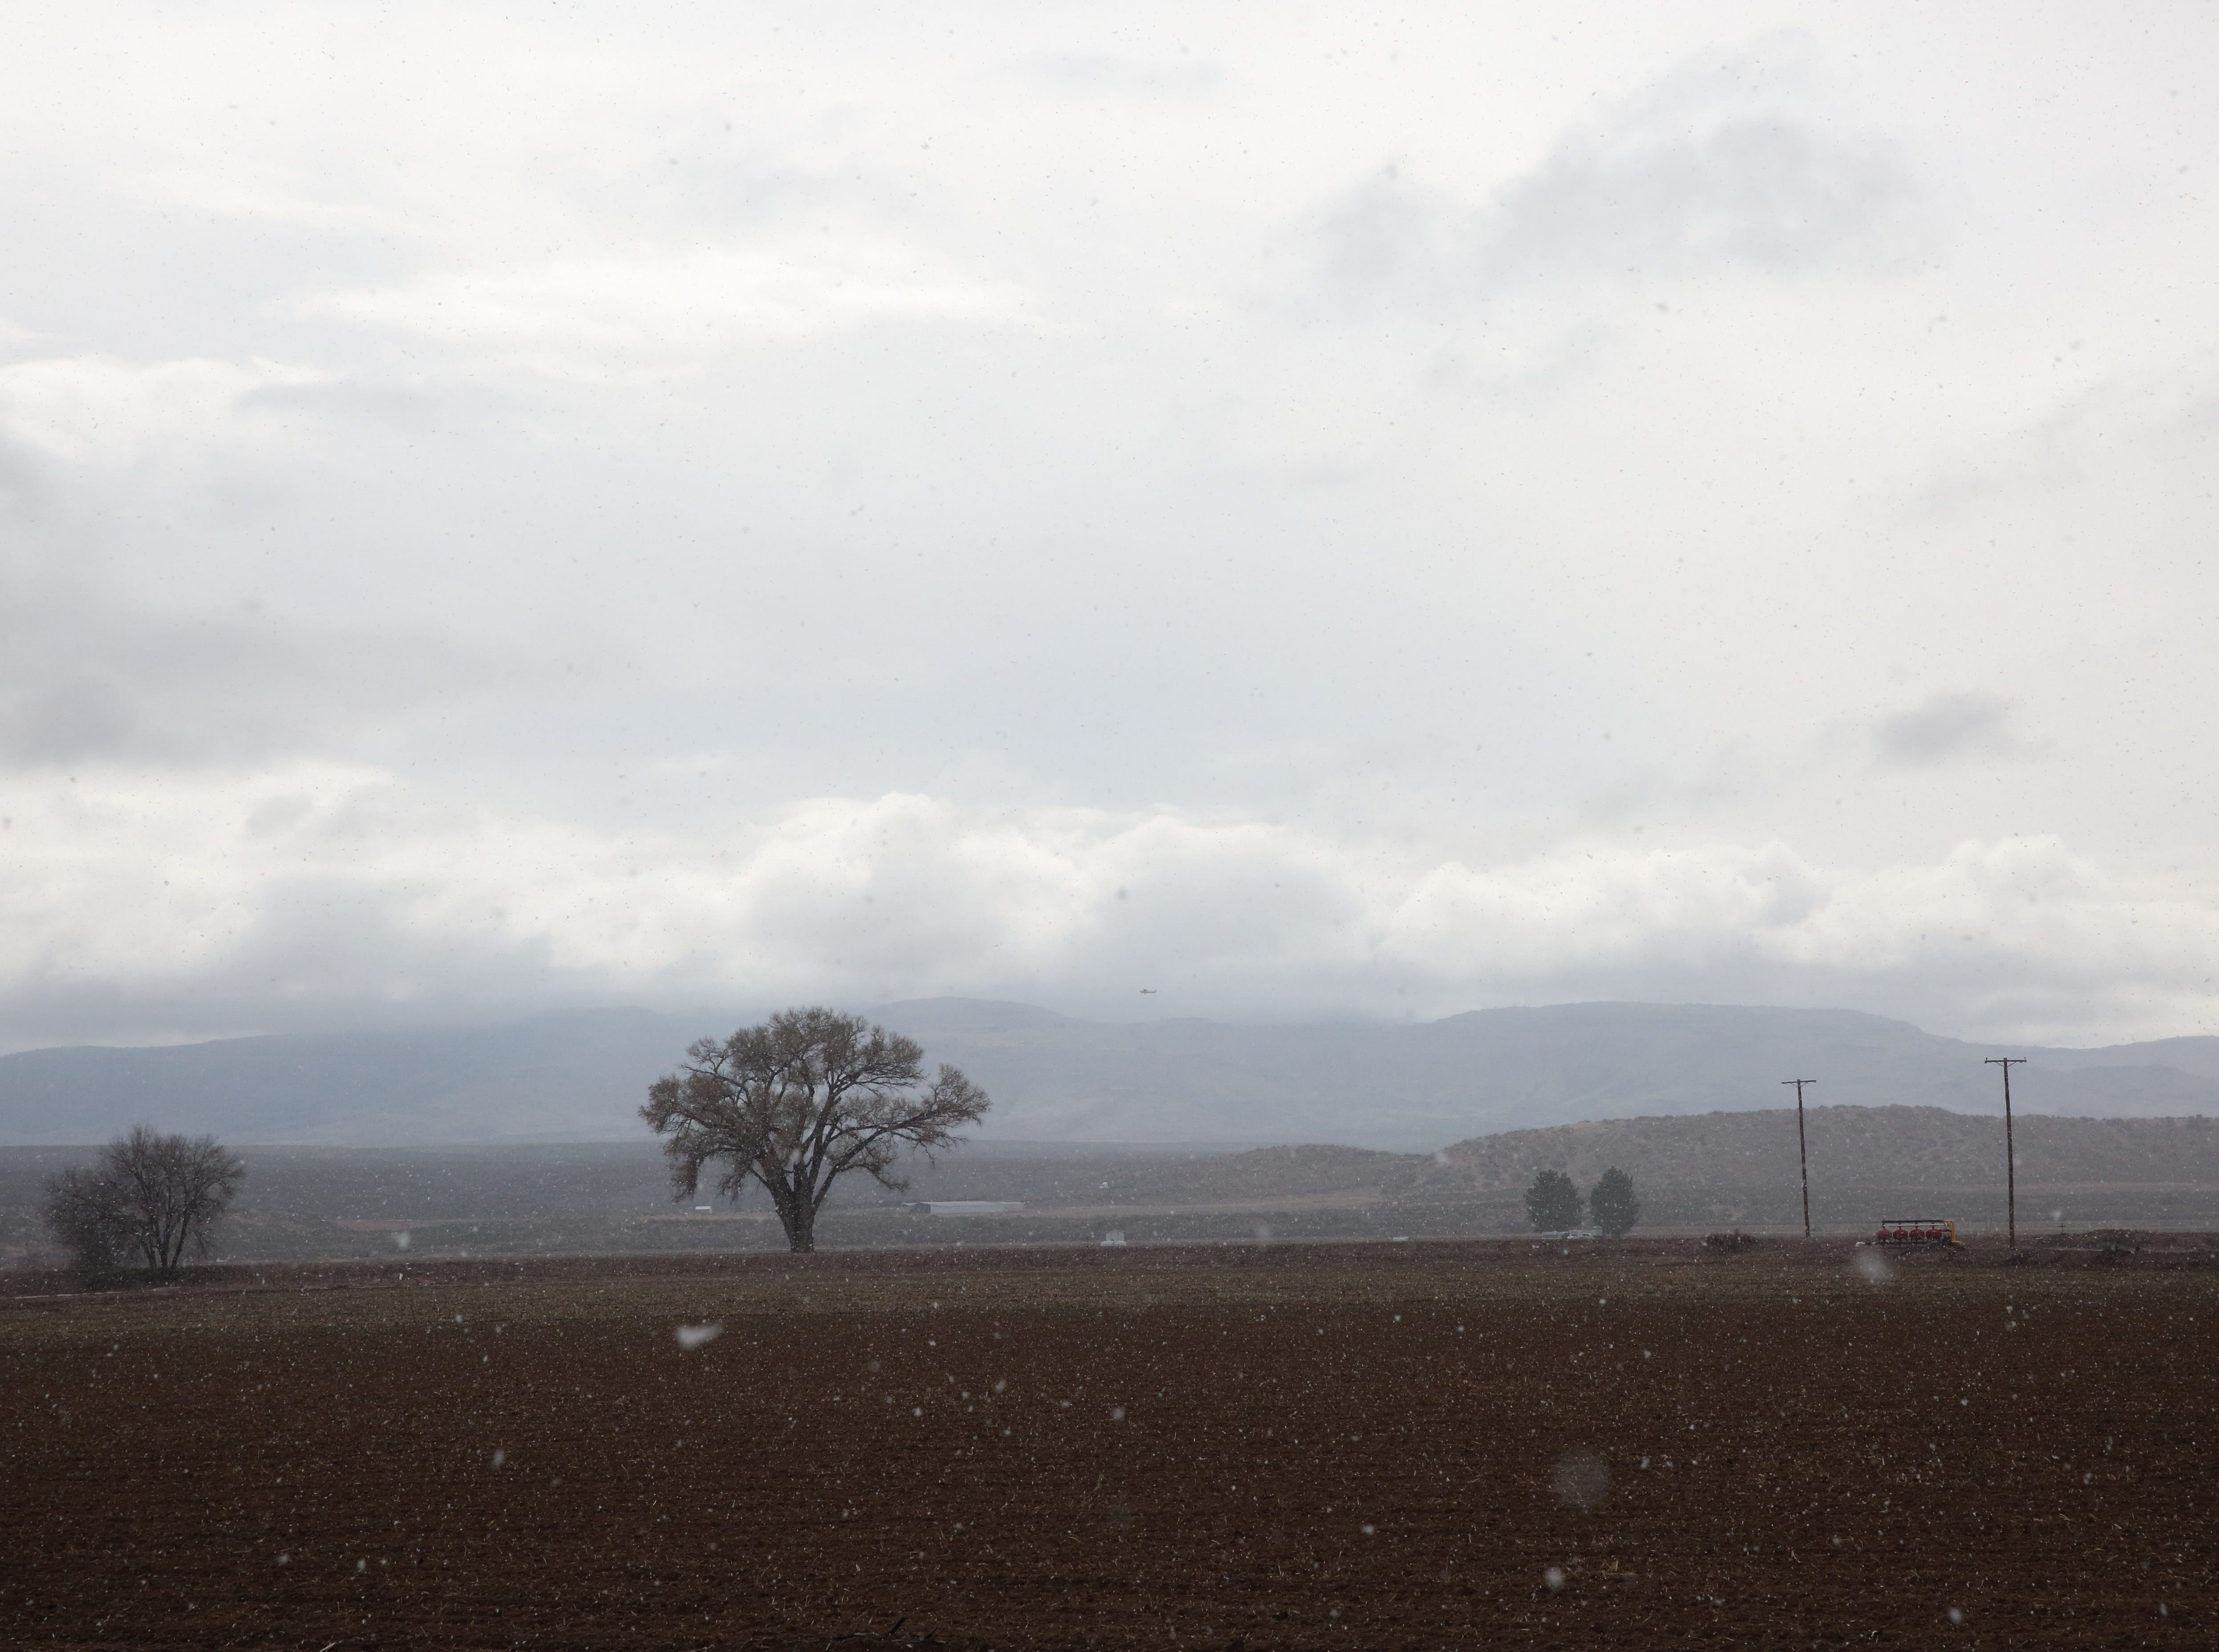 Light snow falls on an empty field on Wednesday, Jan. 2, 2019 just north of Hatch, New Mexico.